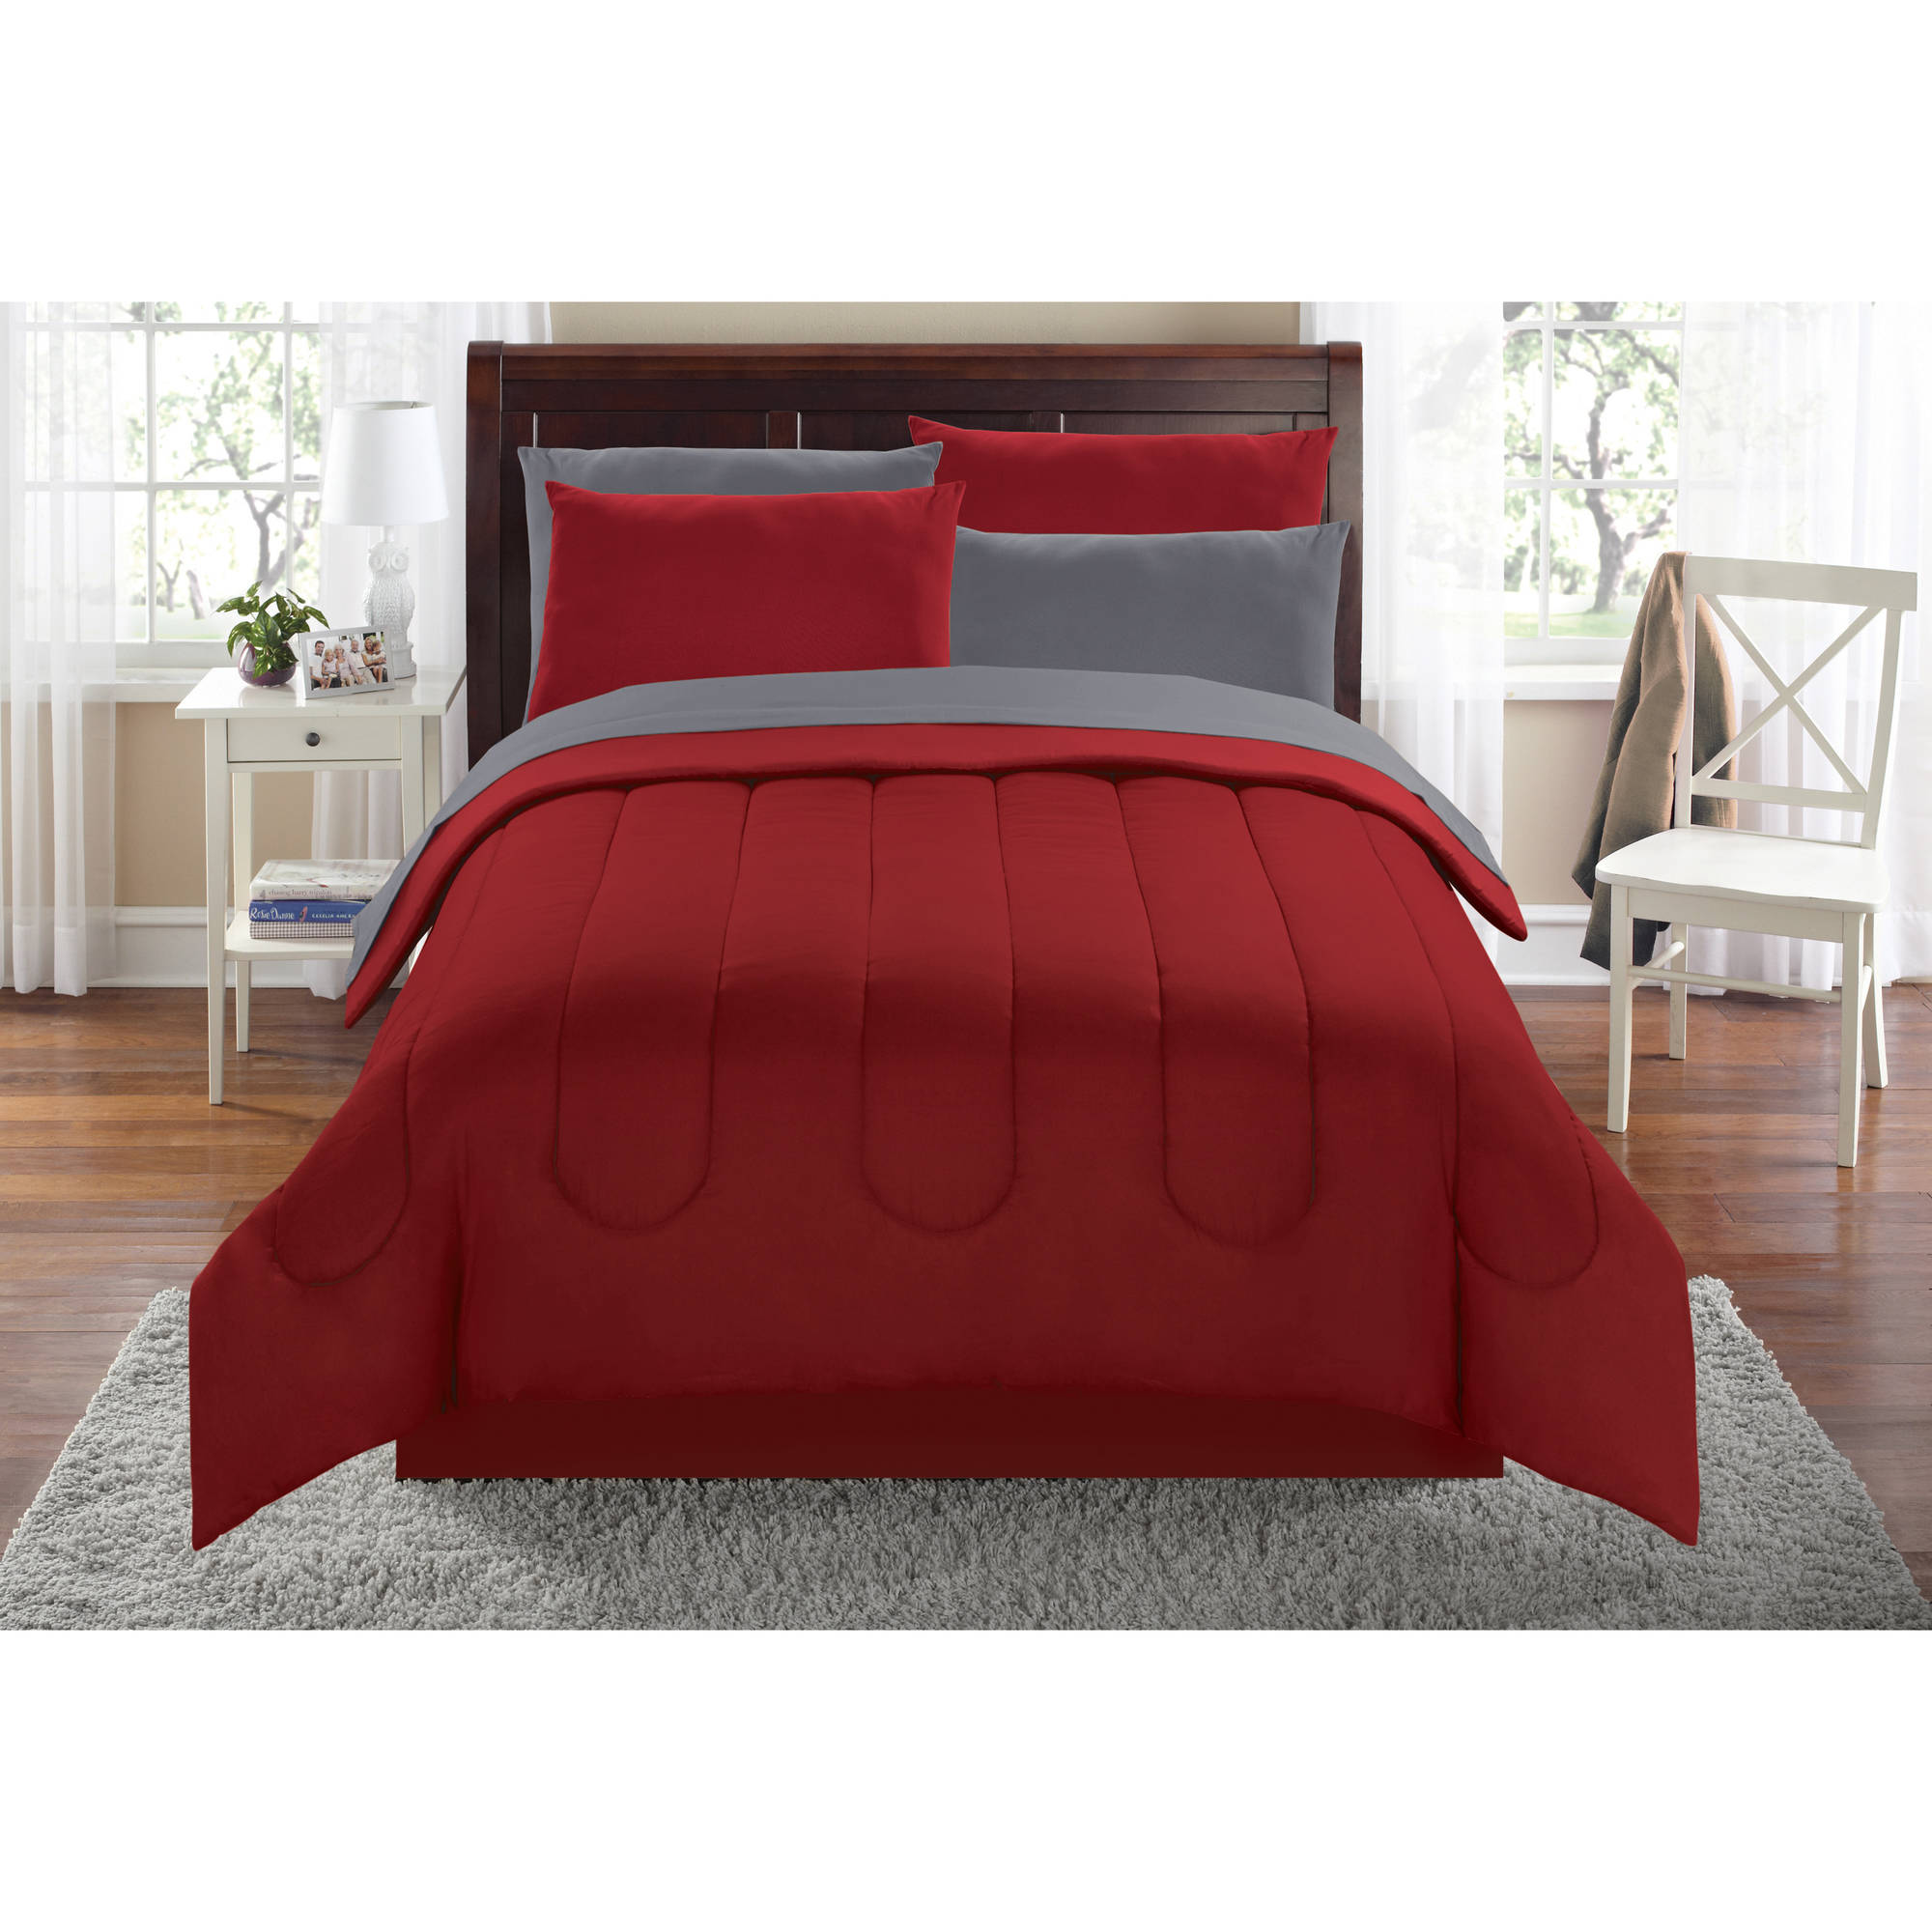 Mainstays Solid Bed In A Bag Coordinating Bedding Set. Product Variants  Selector. Red